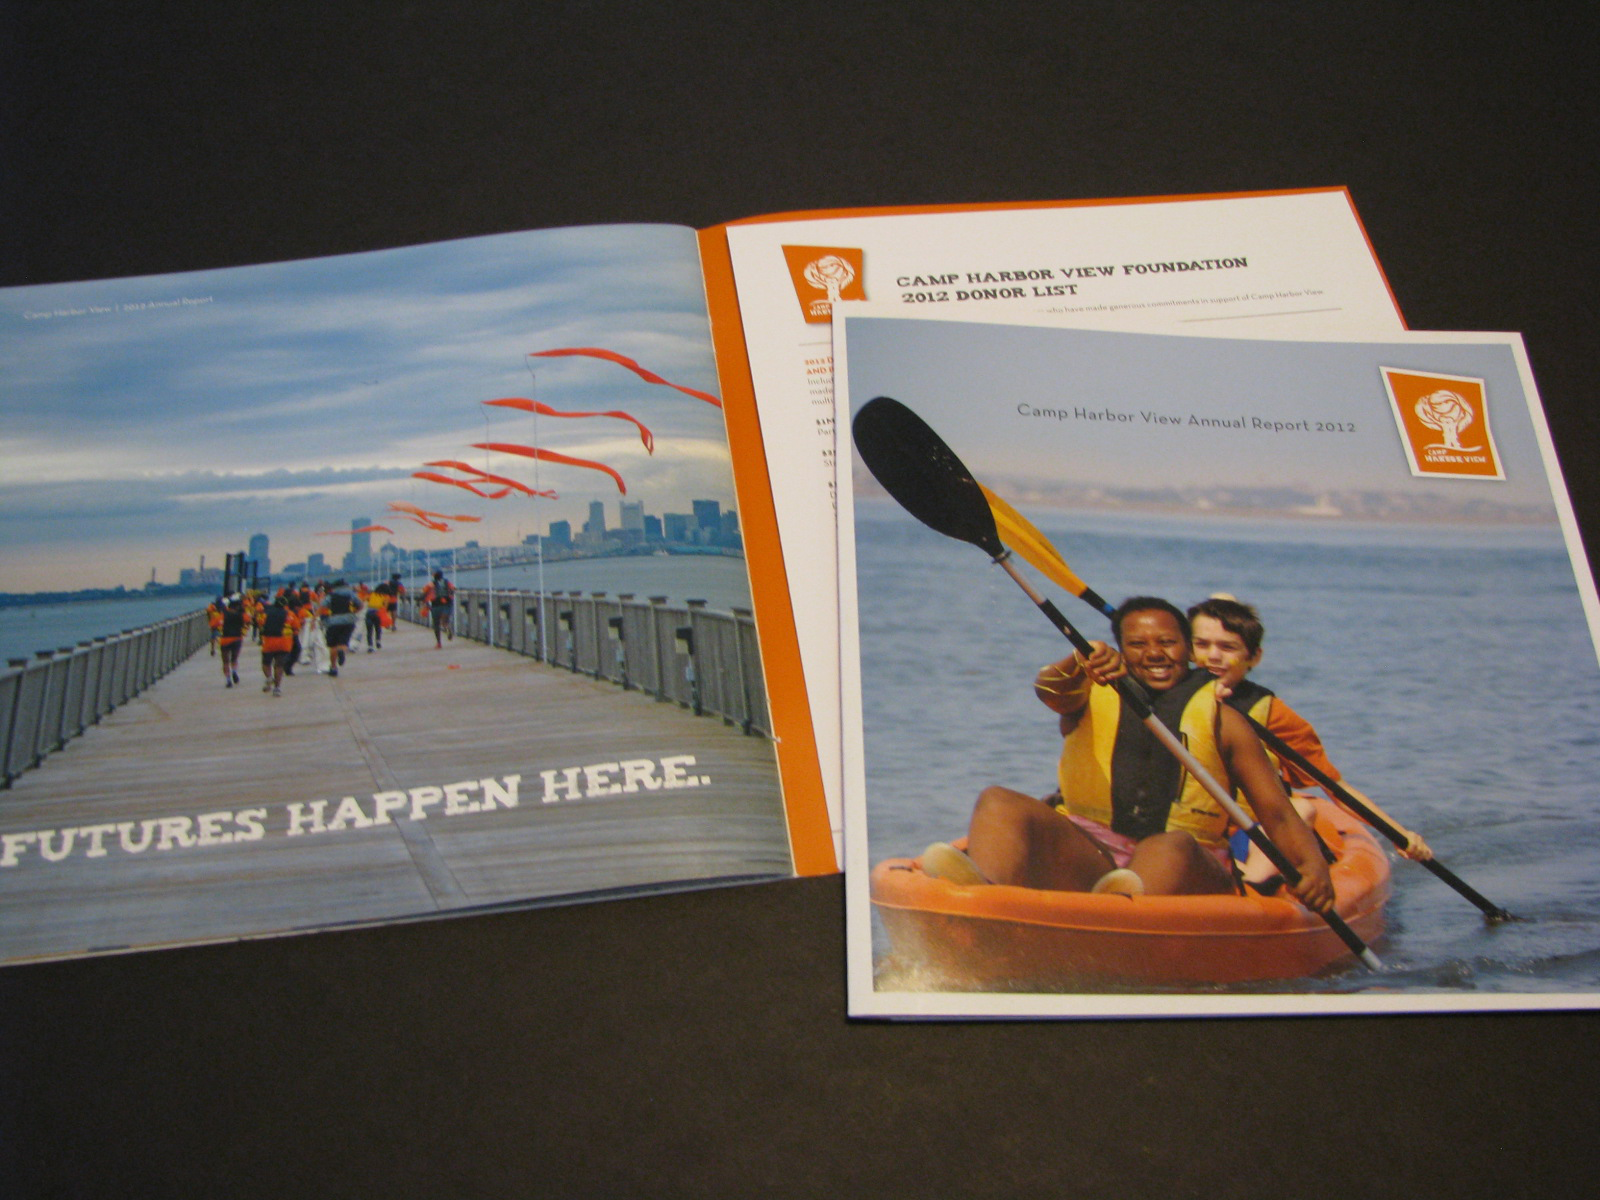 2012 Camp Harbor View Annual Report